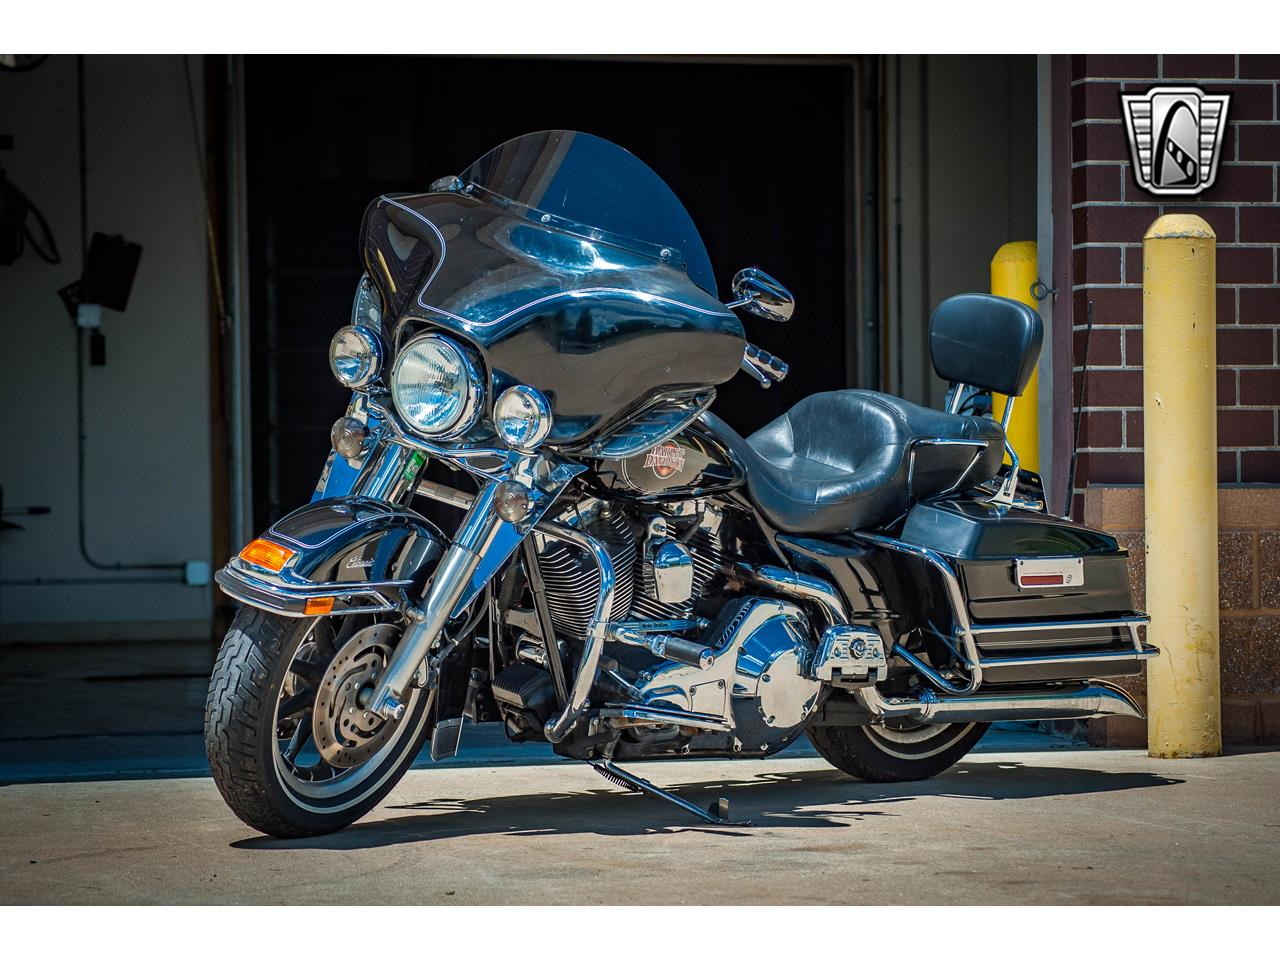 2004 Harley-Davidson Motorcycle for sale in O'Fallon, IL – photo 2